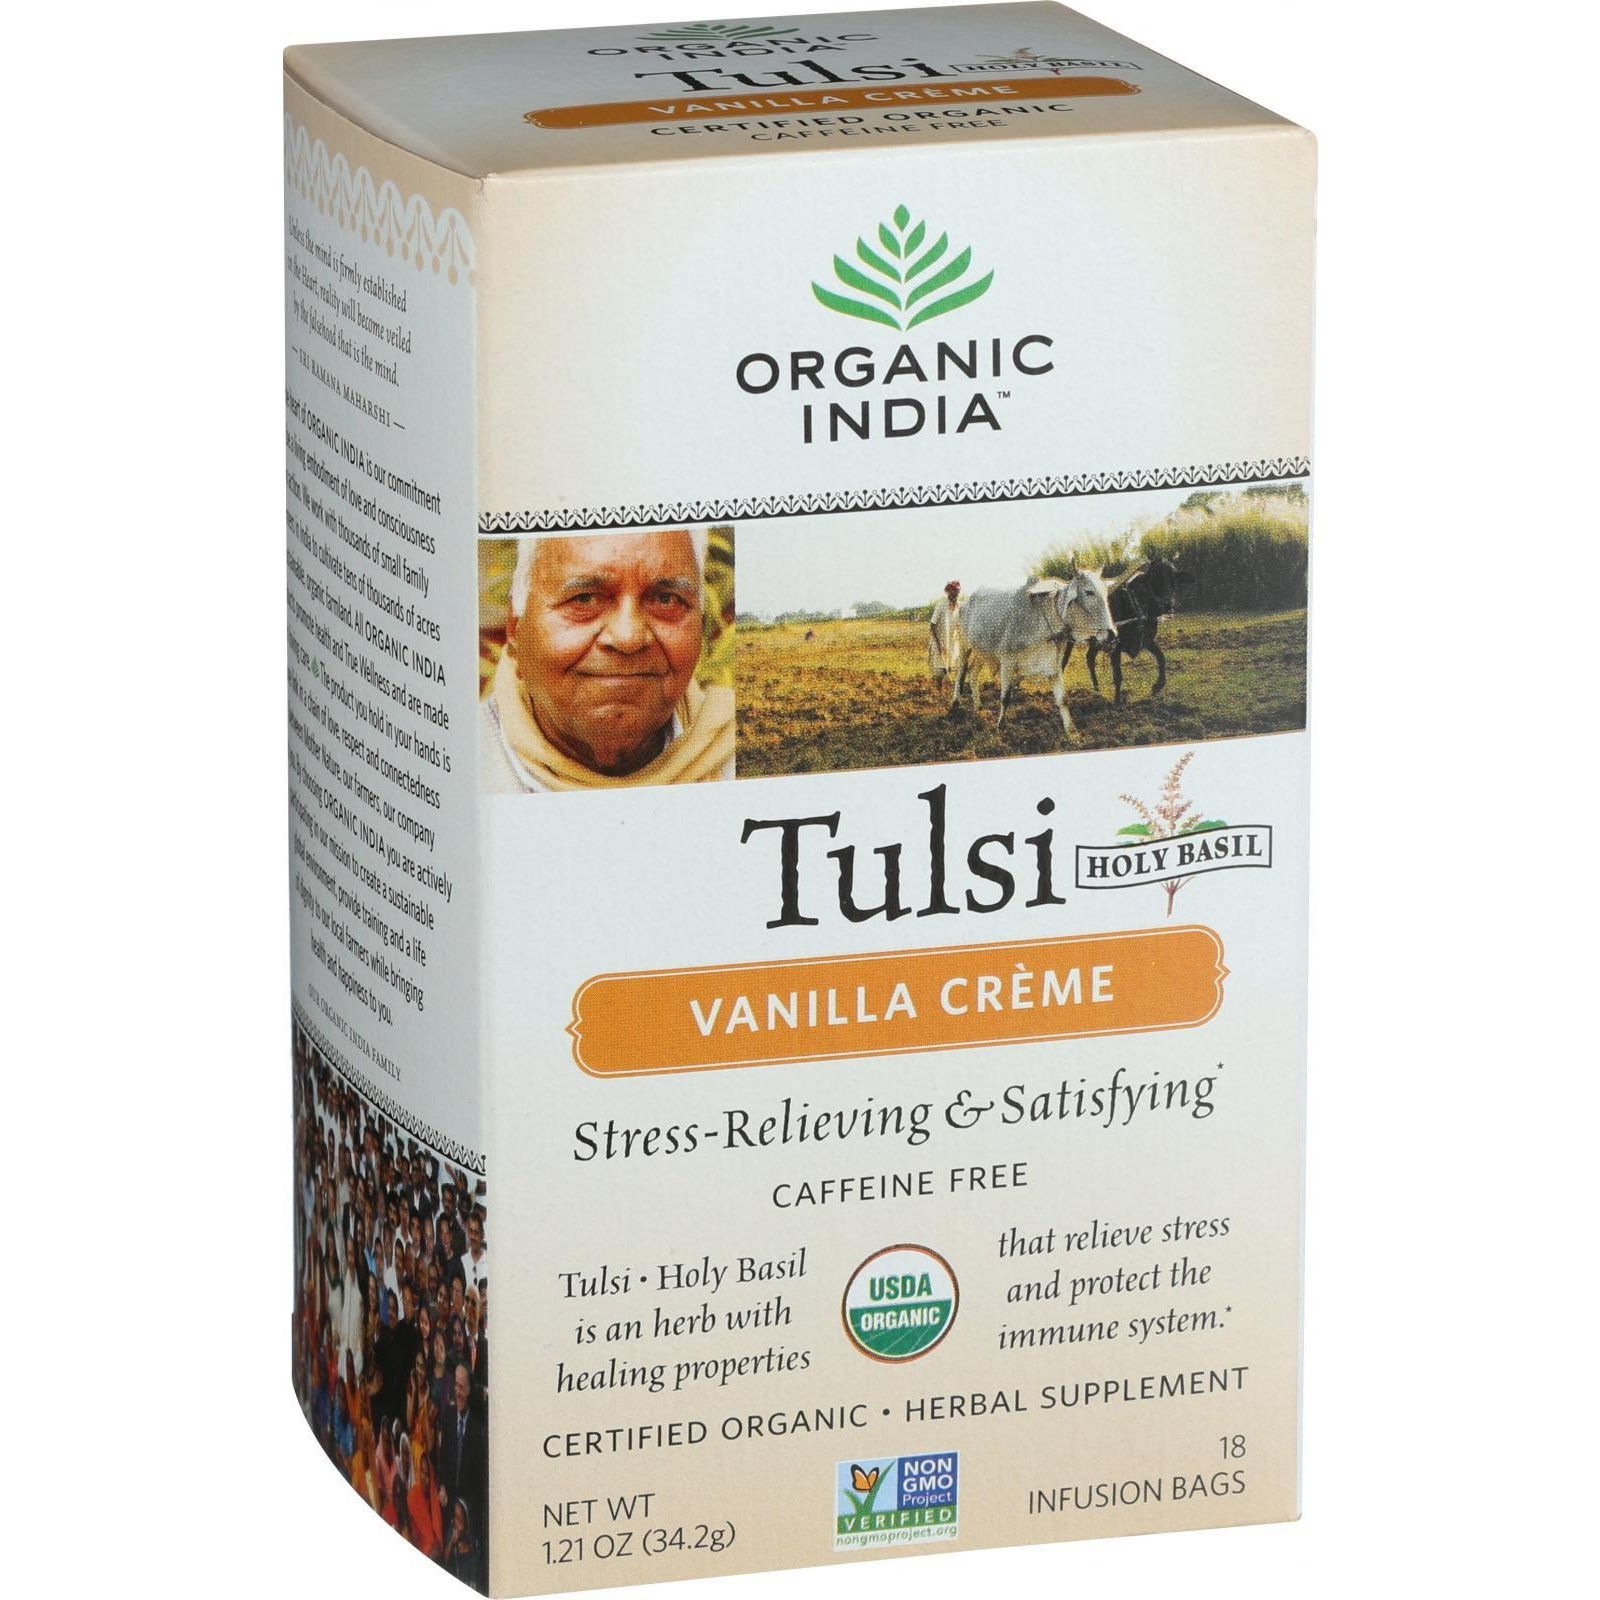 Organic India Organic Tulsi Tea - Vanilla Creme - Caffeine Free - 18 Tea Bags - Case Of 7